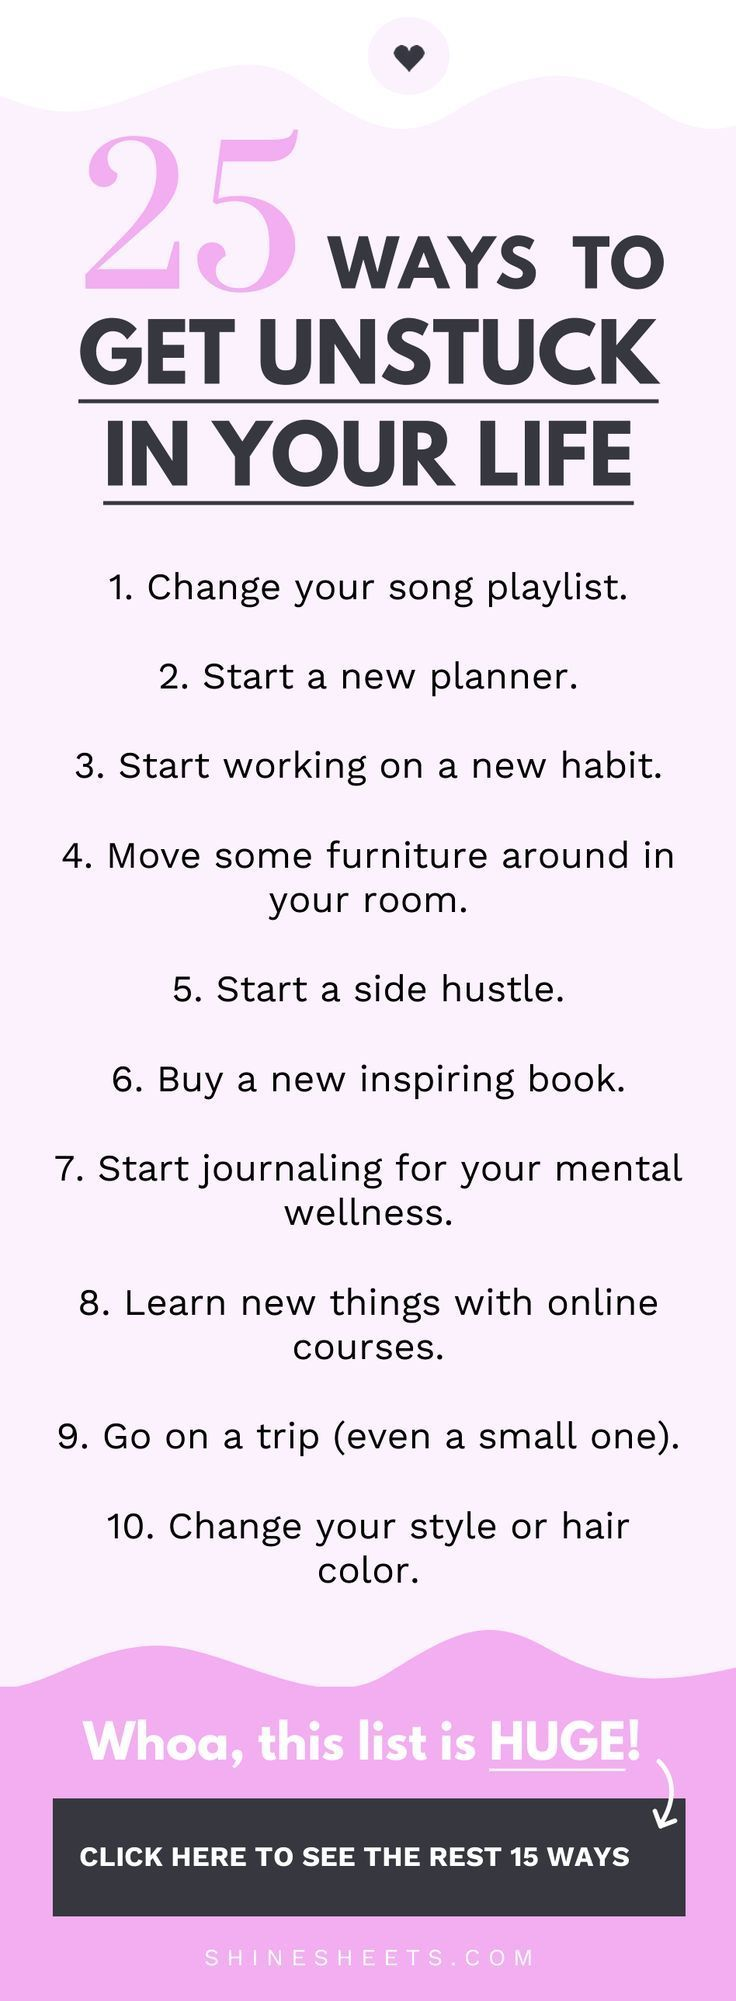 How to get unstuck in your life and start feeling motivated  productive again   Personal development Mental health Motivation Productivity Habits Self help Self improveme...